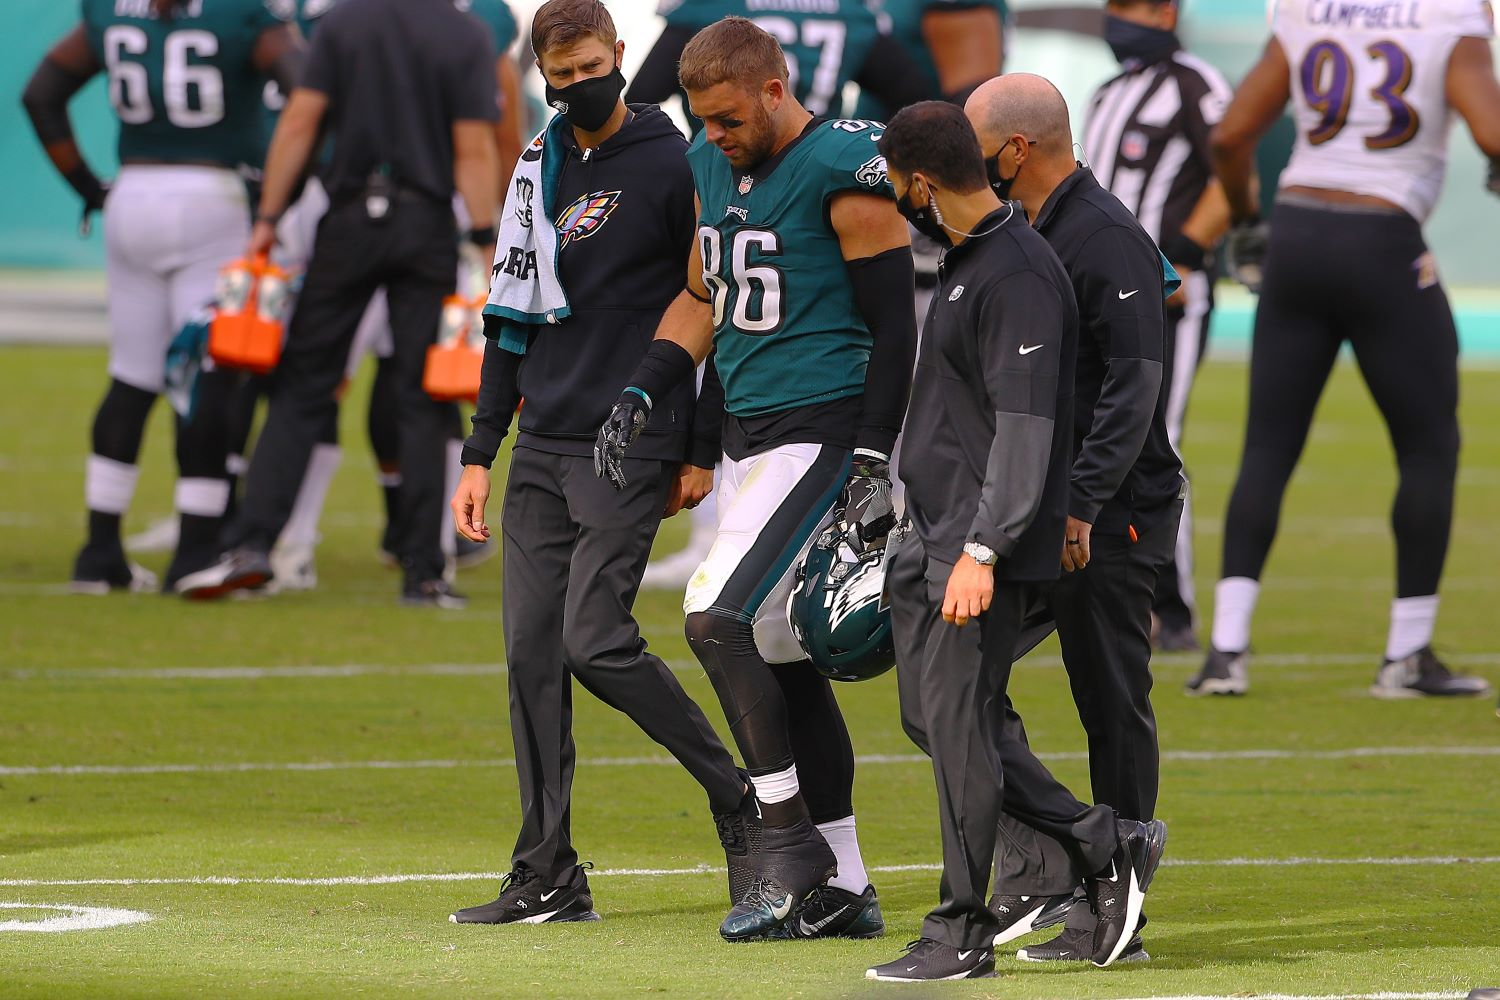 With Zach Ertz out for three to four weeks with an ankle injury, the Philadelphia Eagles just suffered a massive blow to their offense.